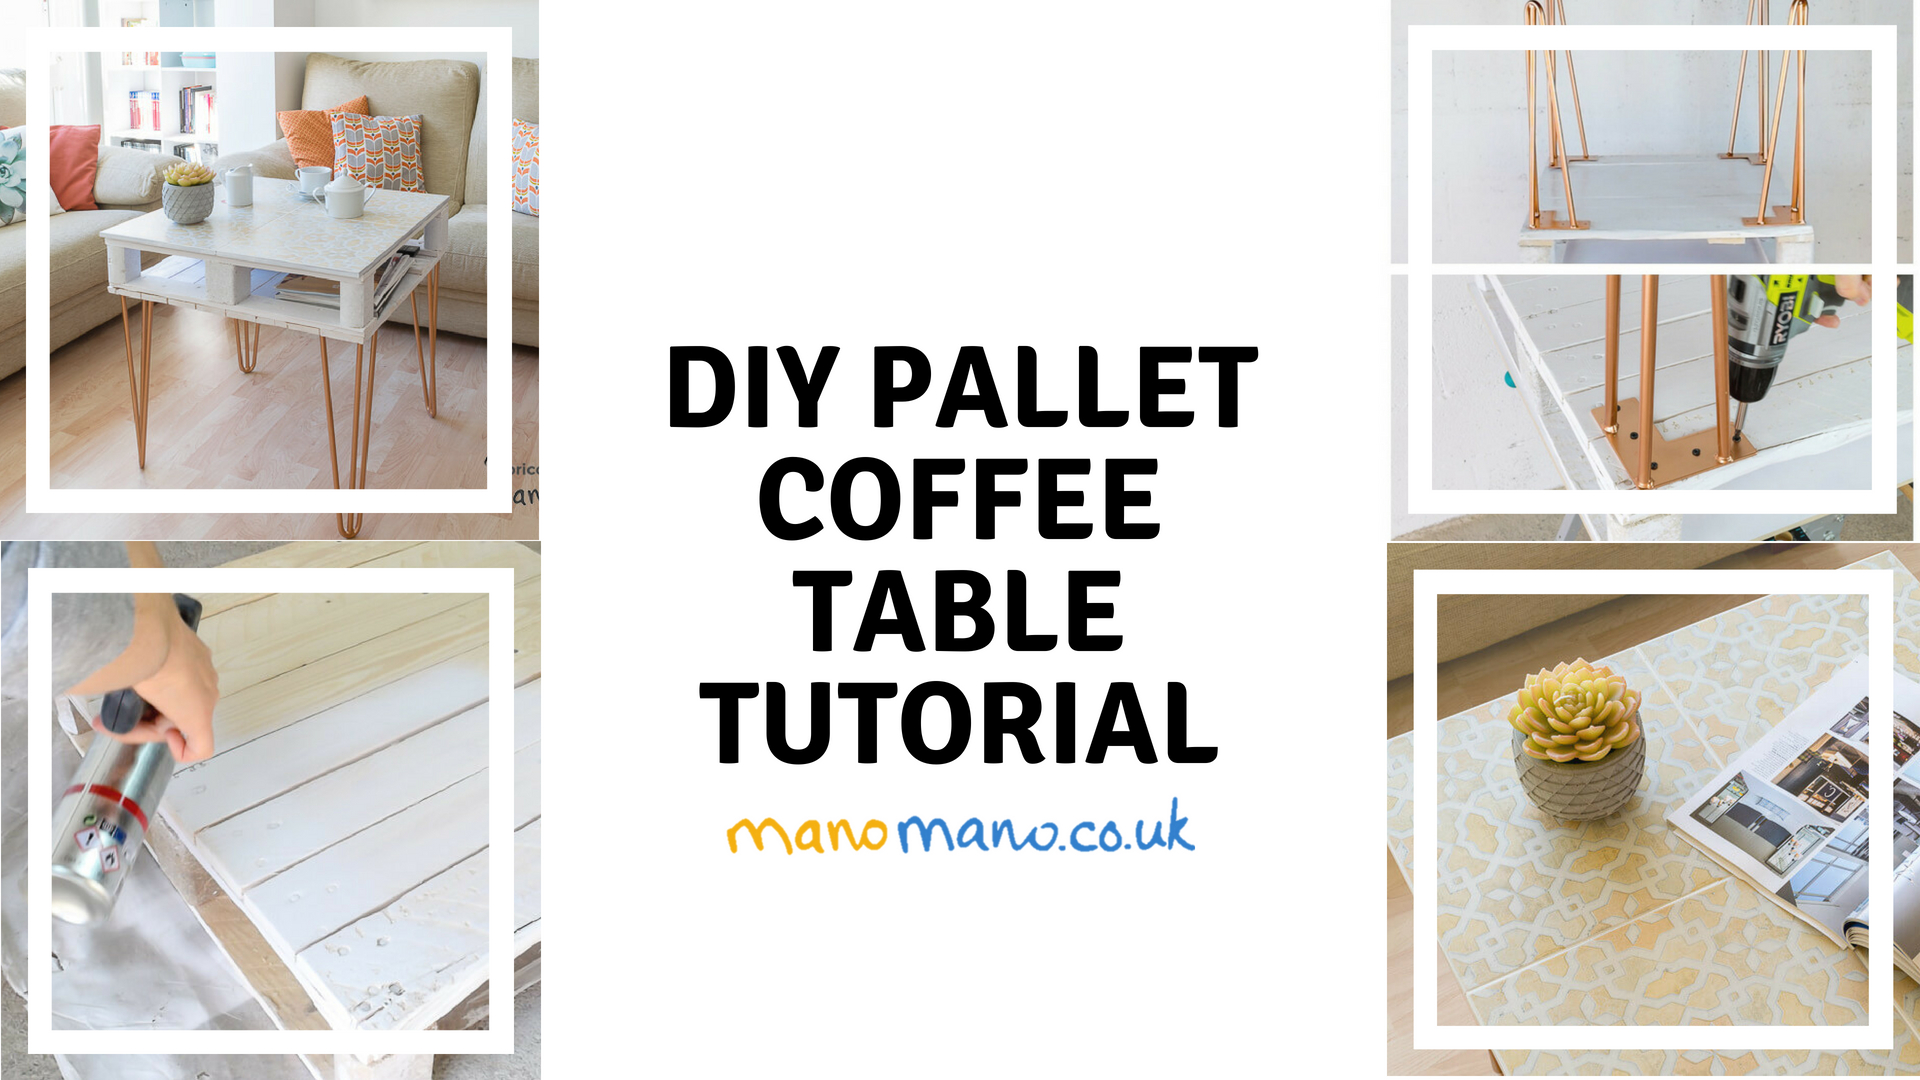 thehandymano mano mano diy pallet coffee table tutorial